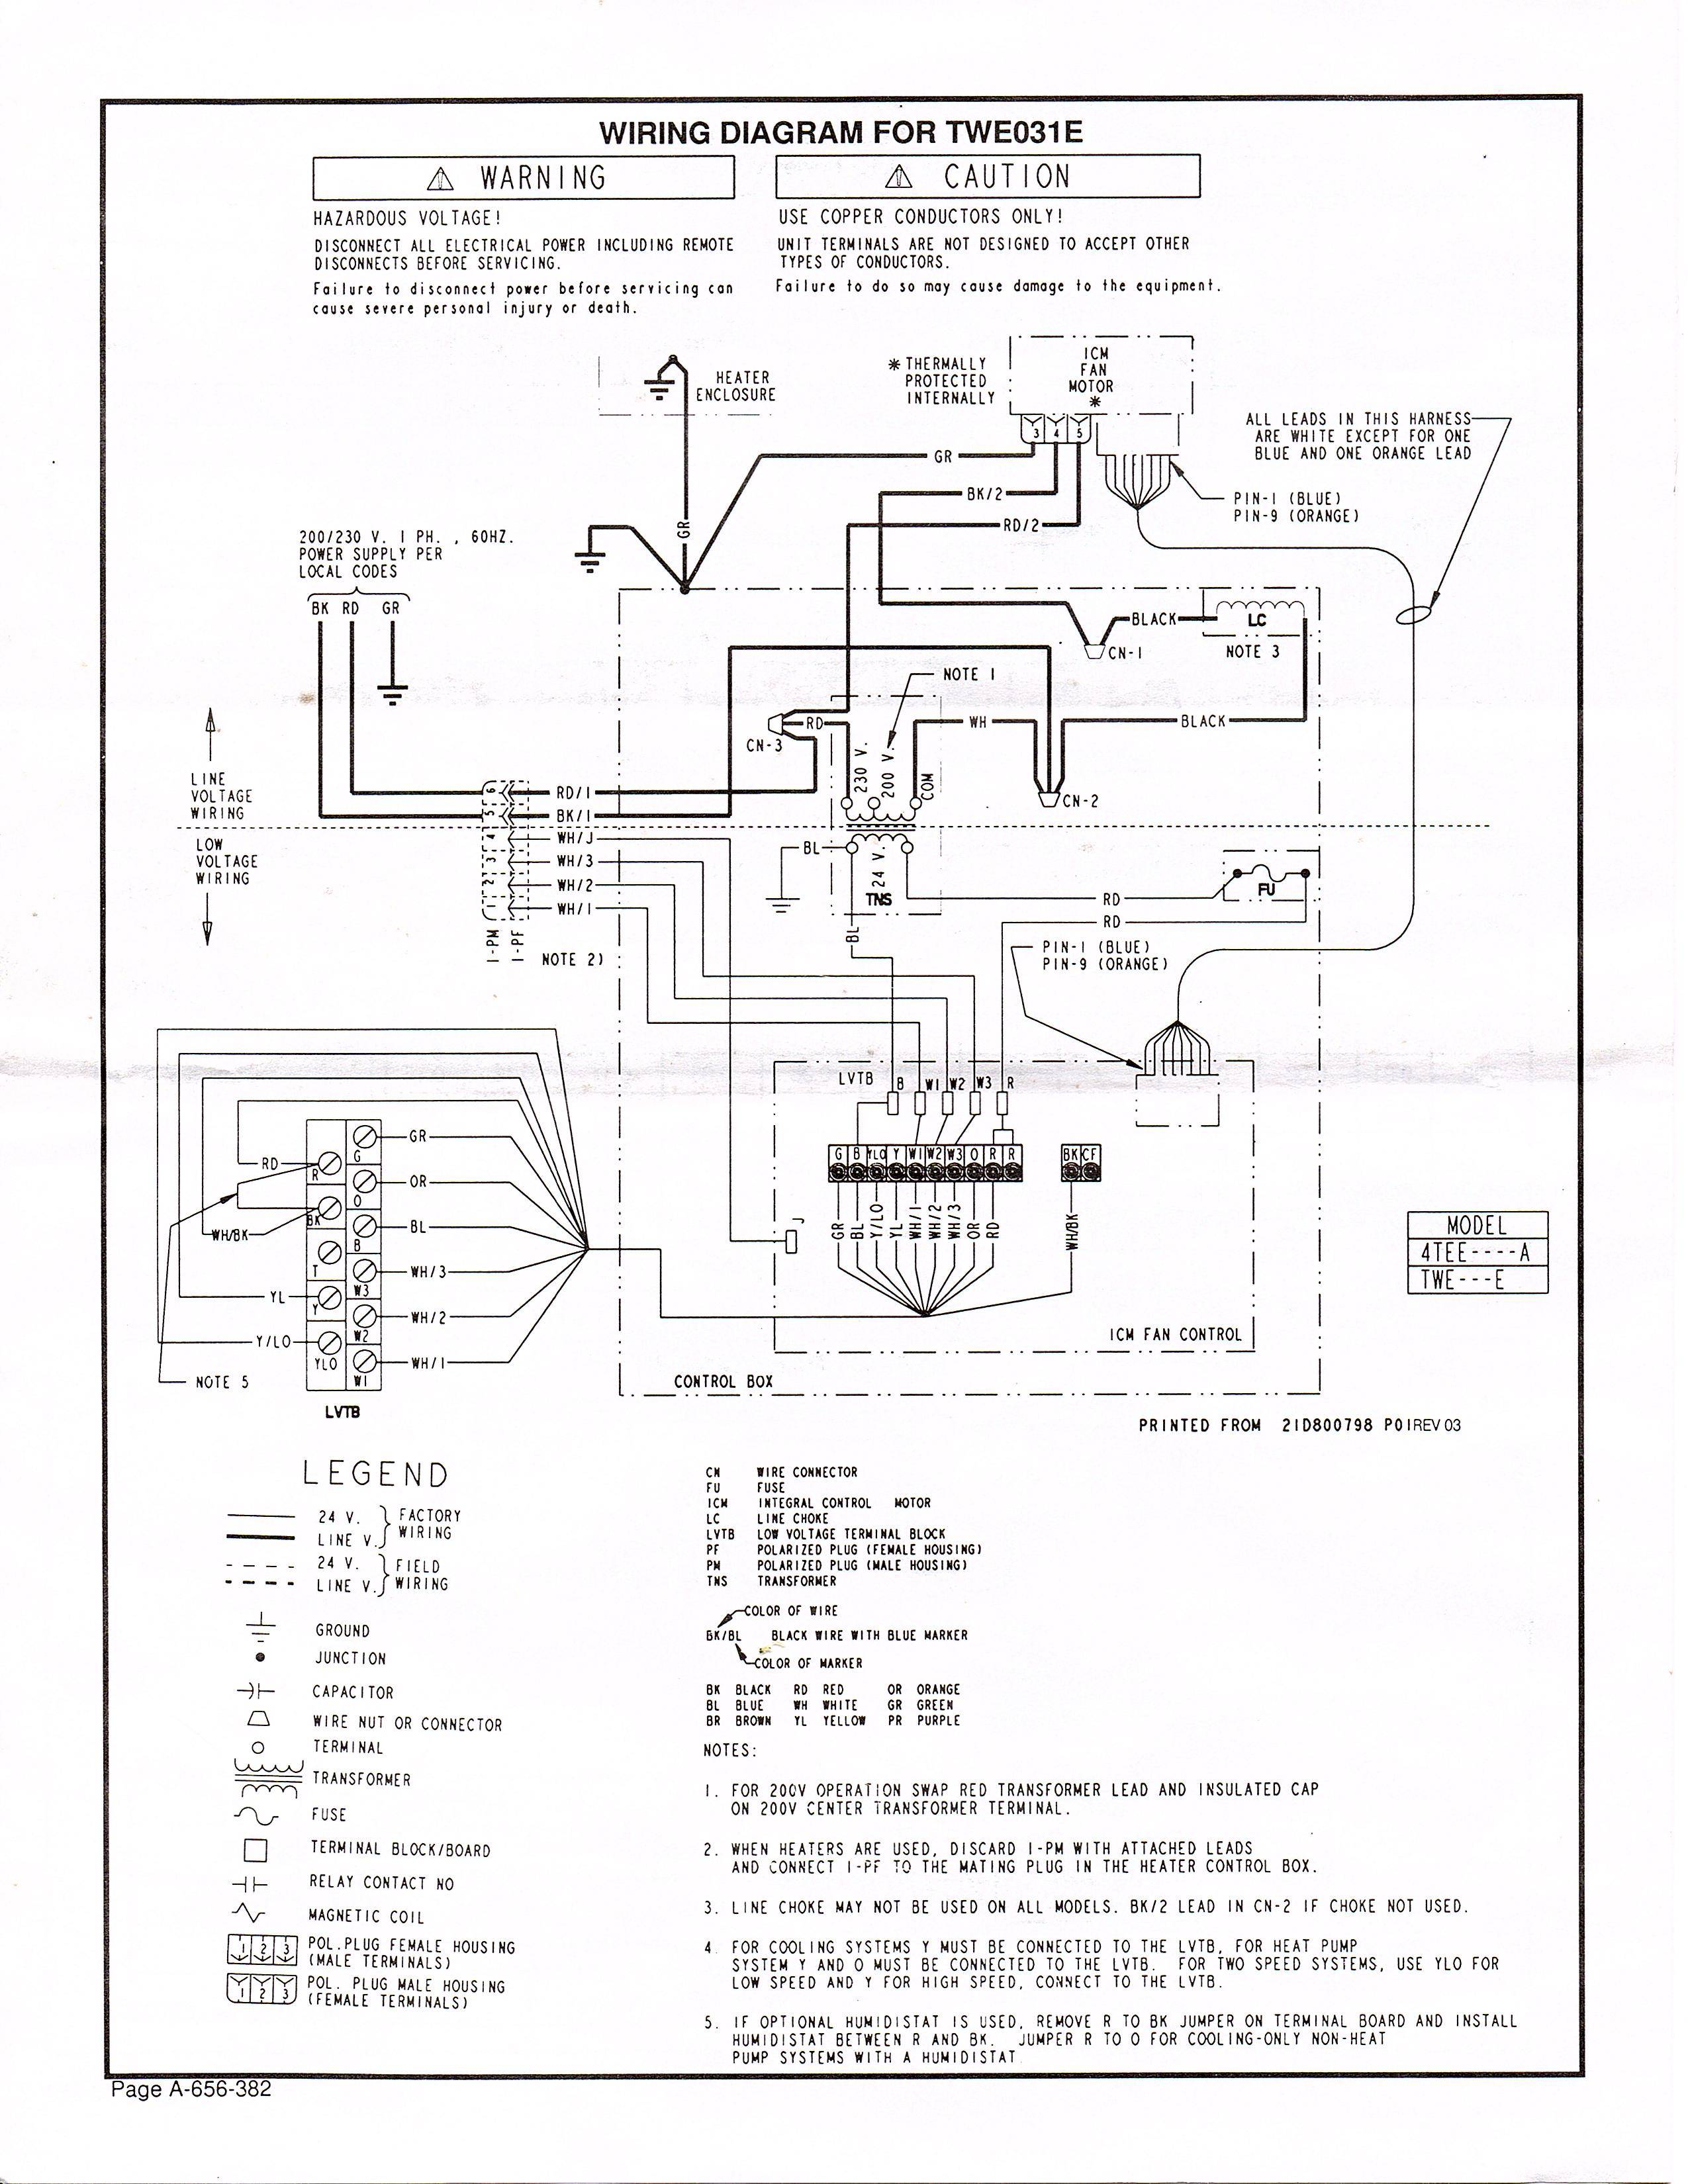 [DIAGRAM] Honeywell Thermostat Th5110d1022 Wiring Diagram